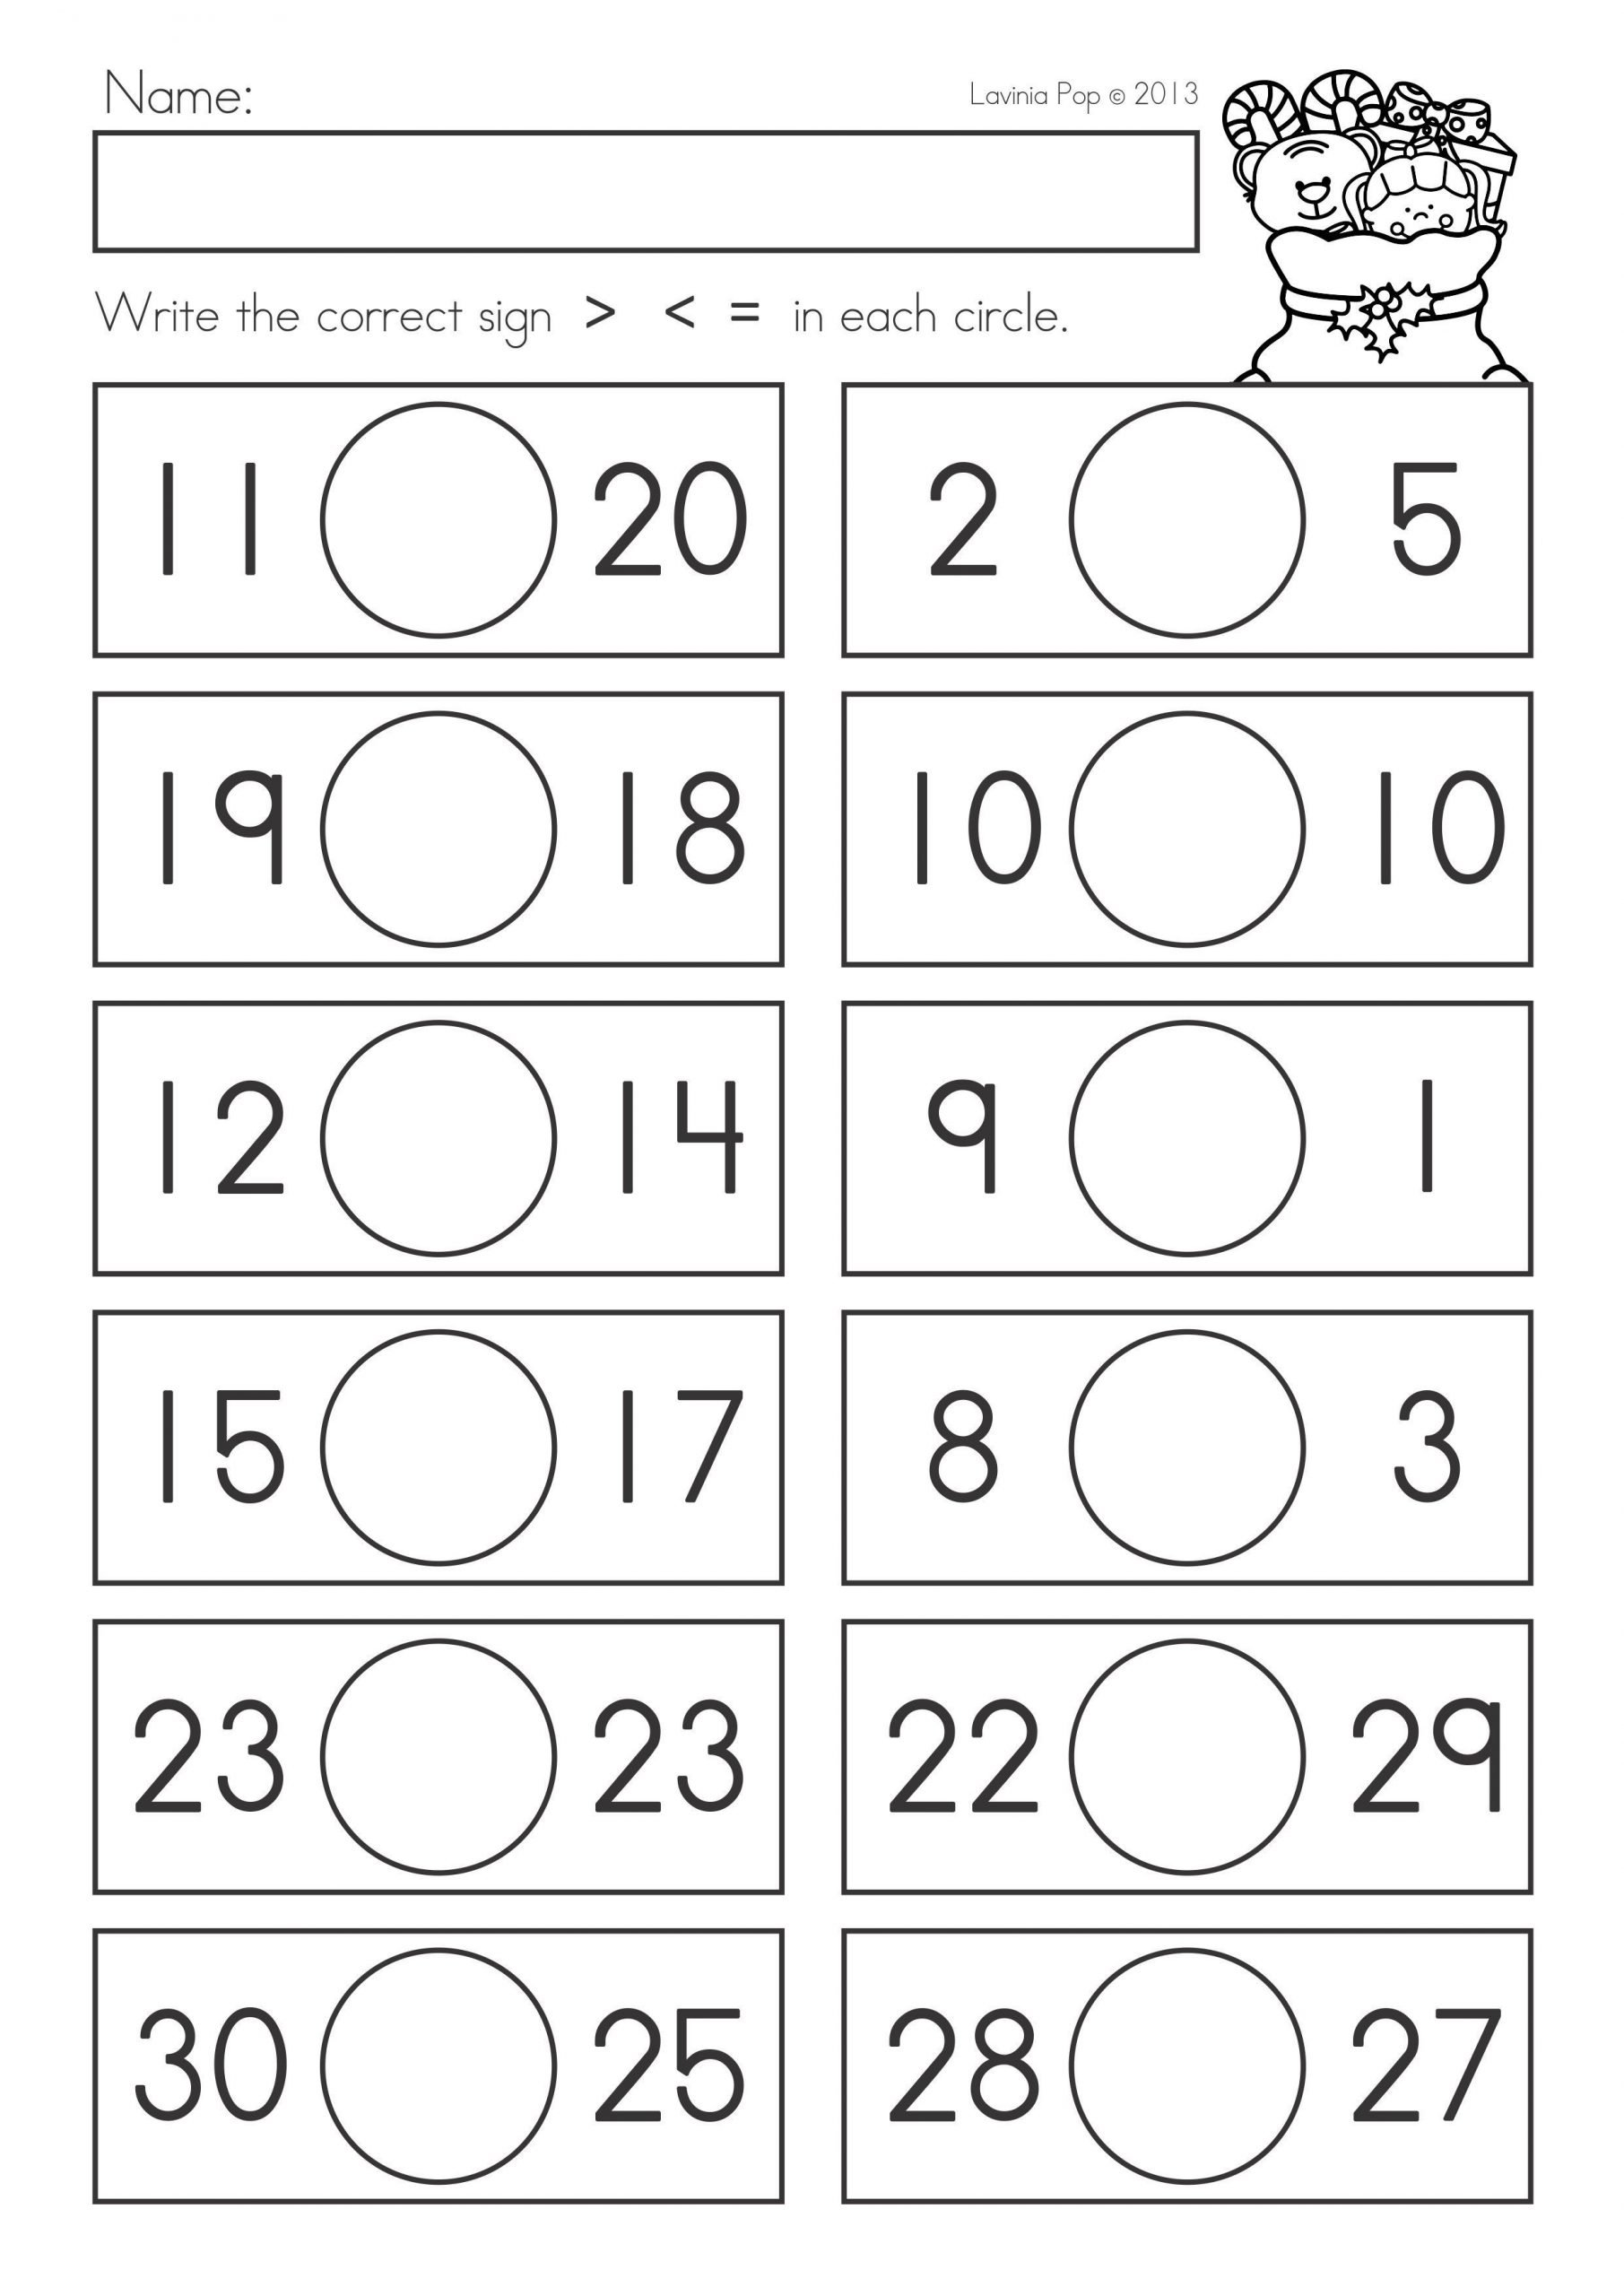 paring Numbers Worksheets To Download paring Numbers